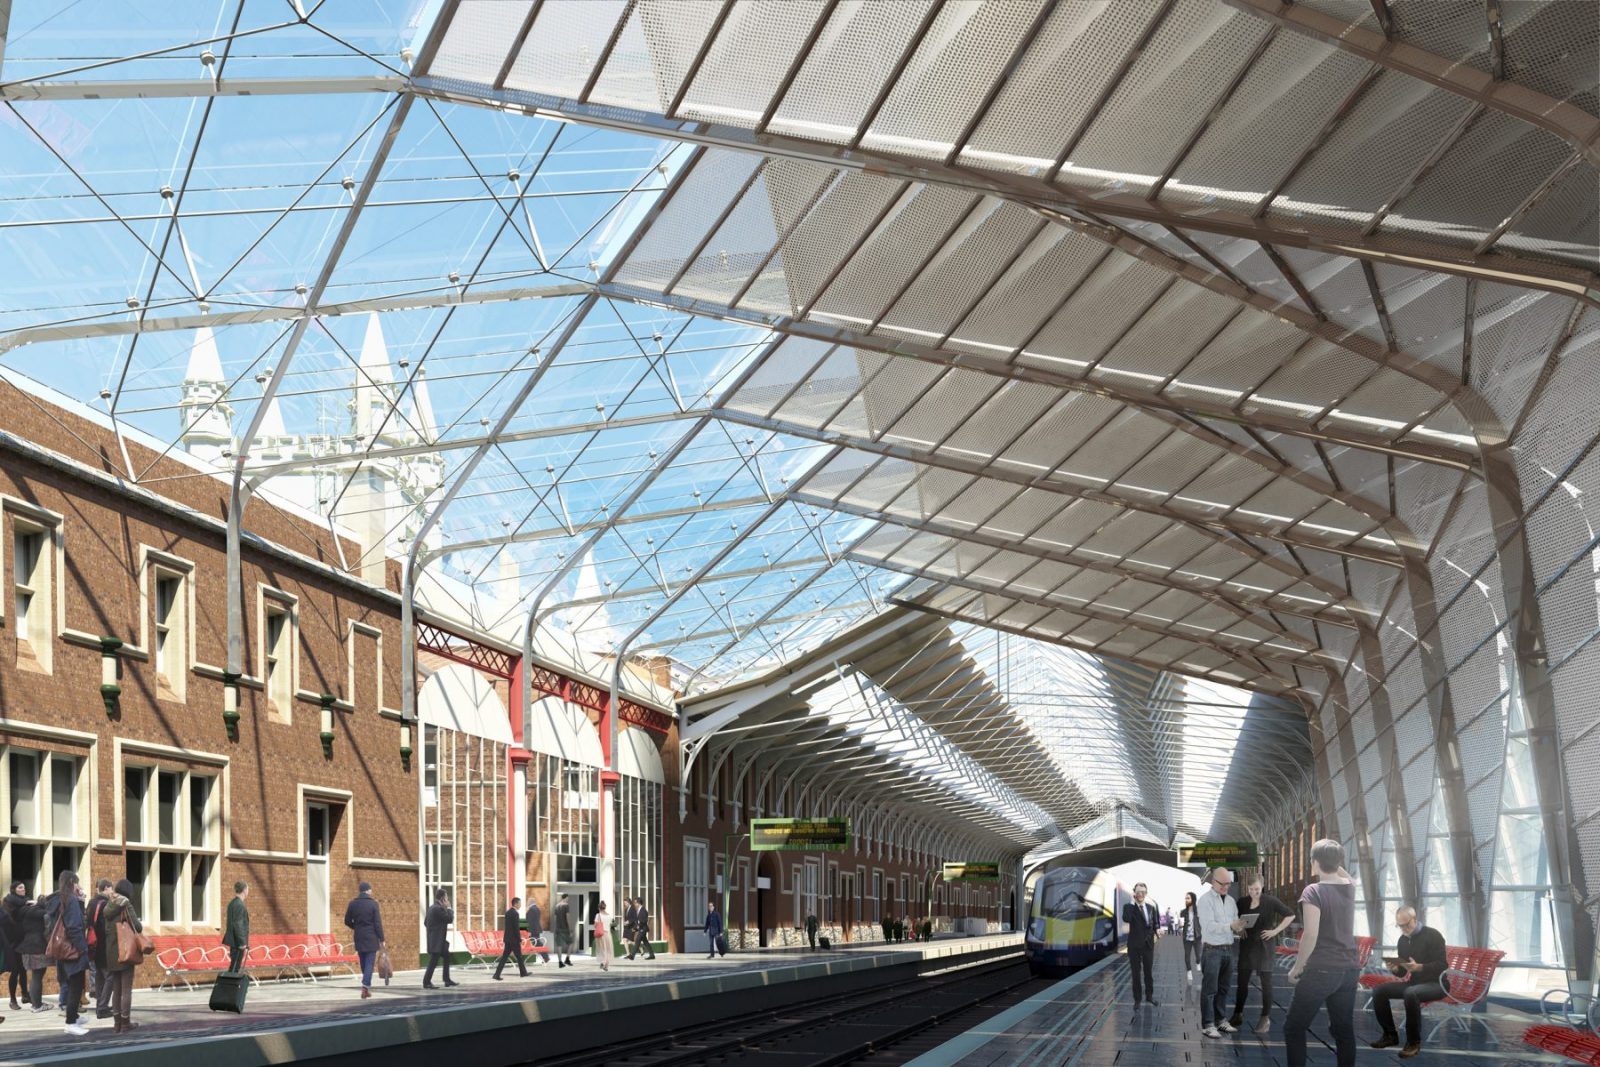 bristol temple meads regeneration london platform entrance canopy architects jersey architects3